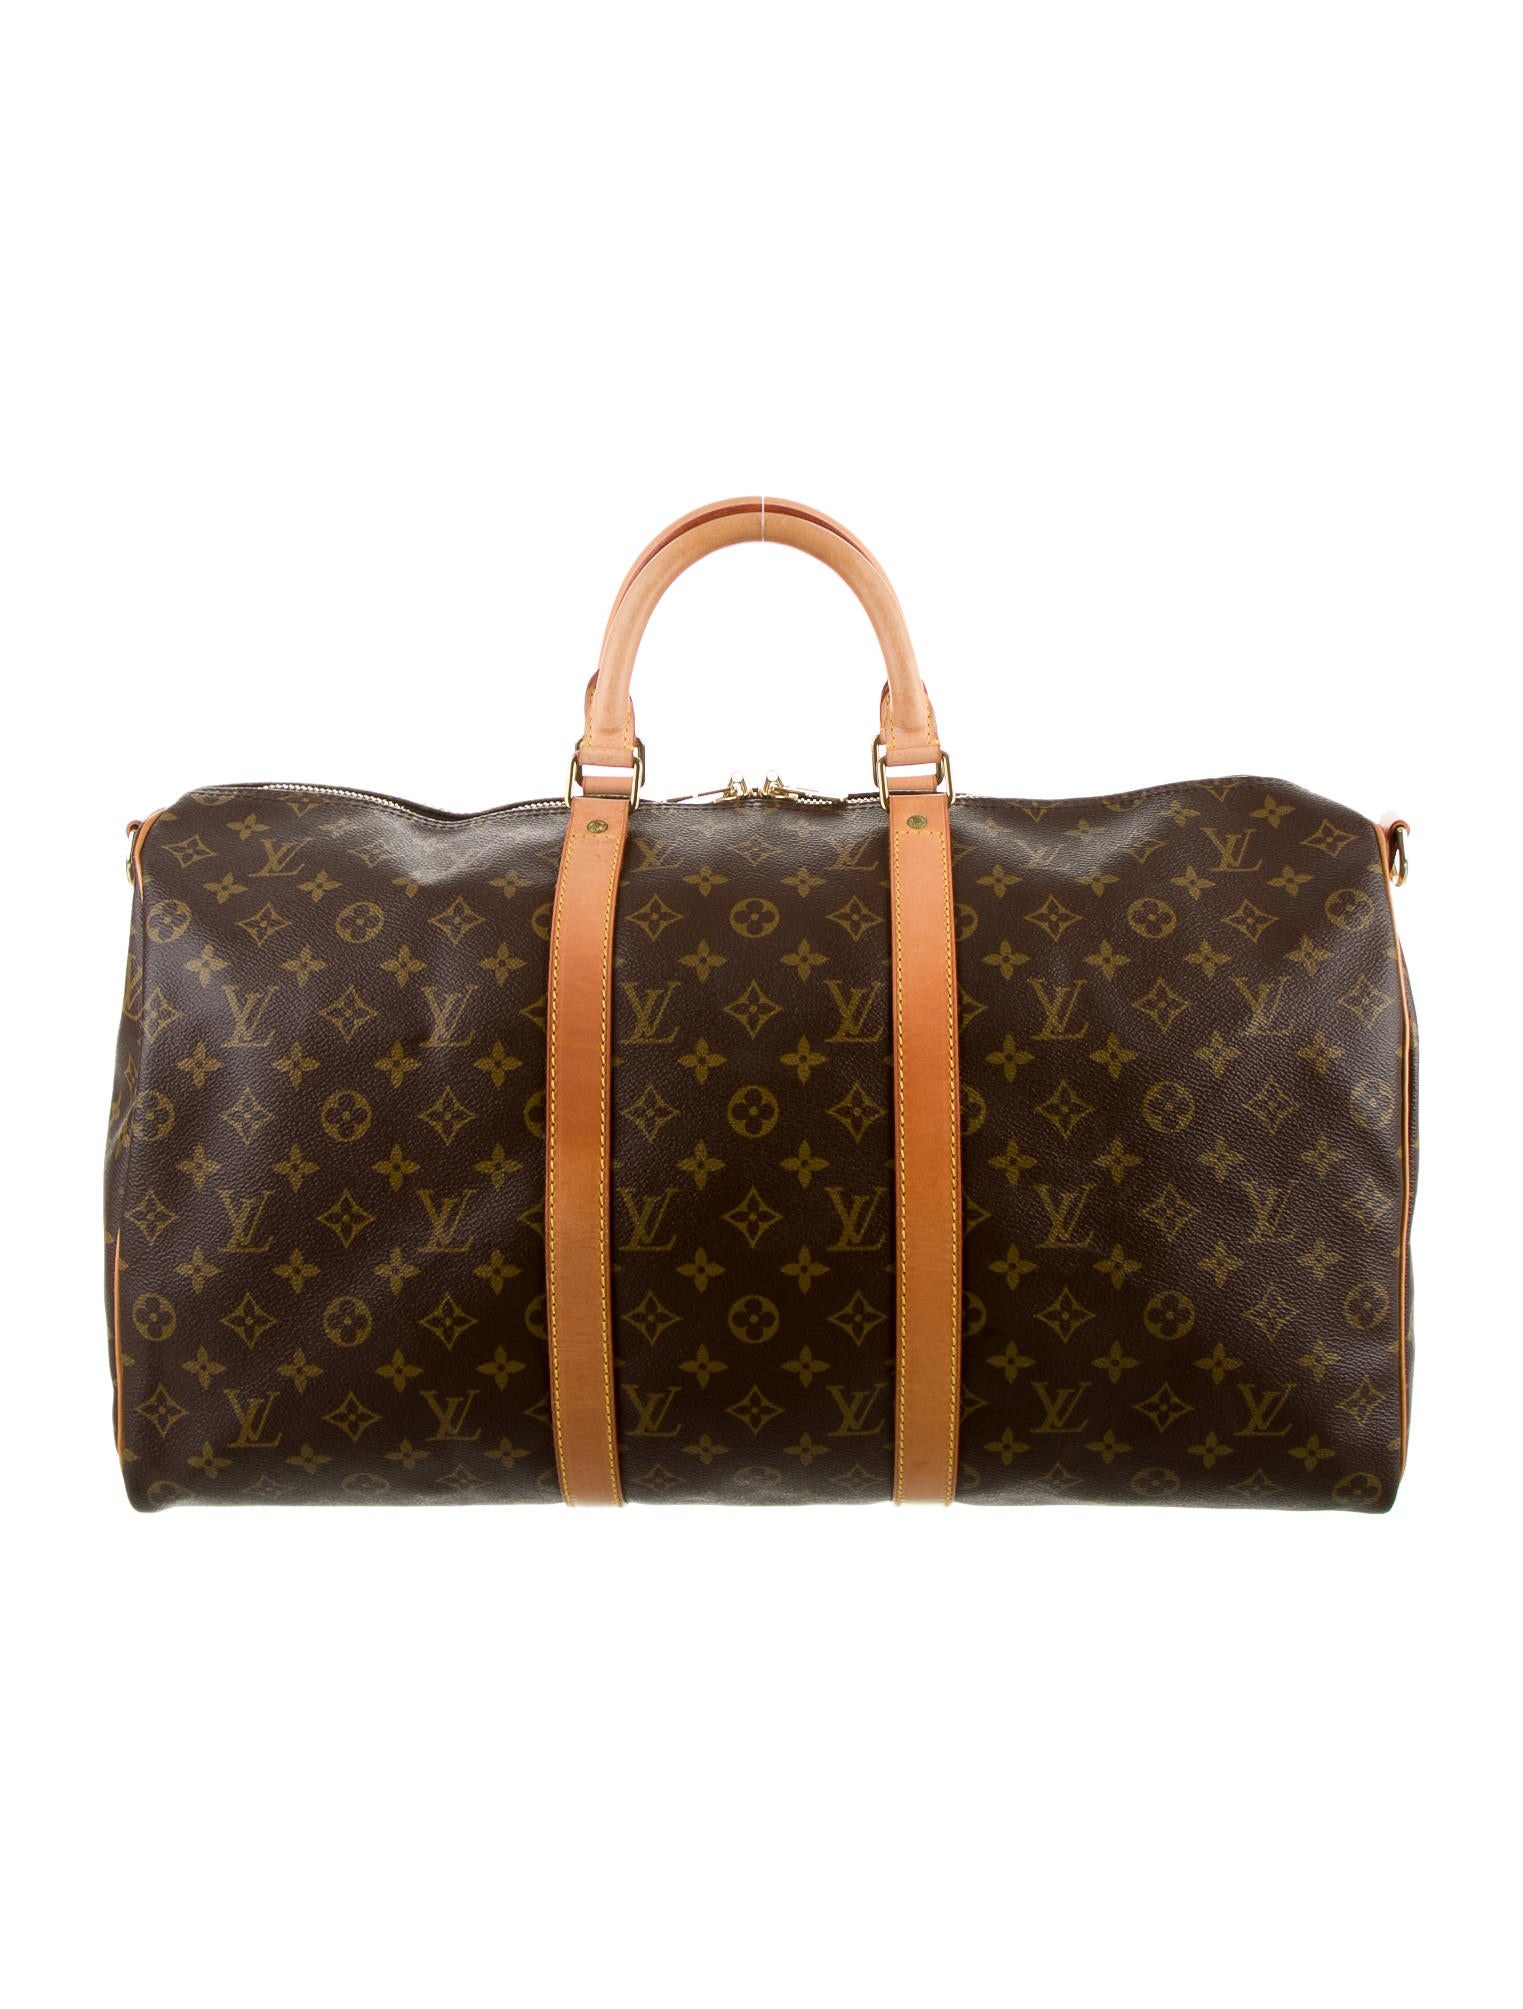 louis vuitton monogram keepall 50 luggage lou65394 the realreal. Black Bedroom Furniture Sets. Home Design Ideas